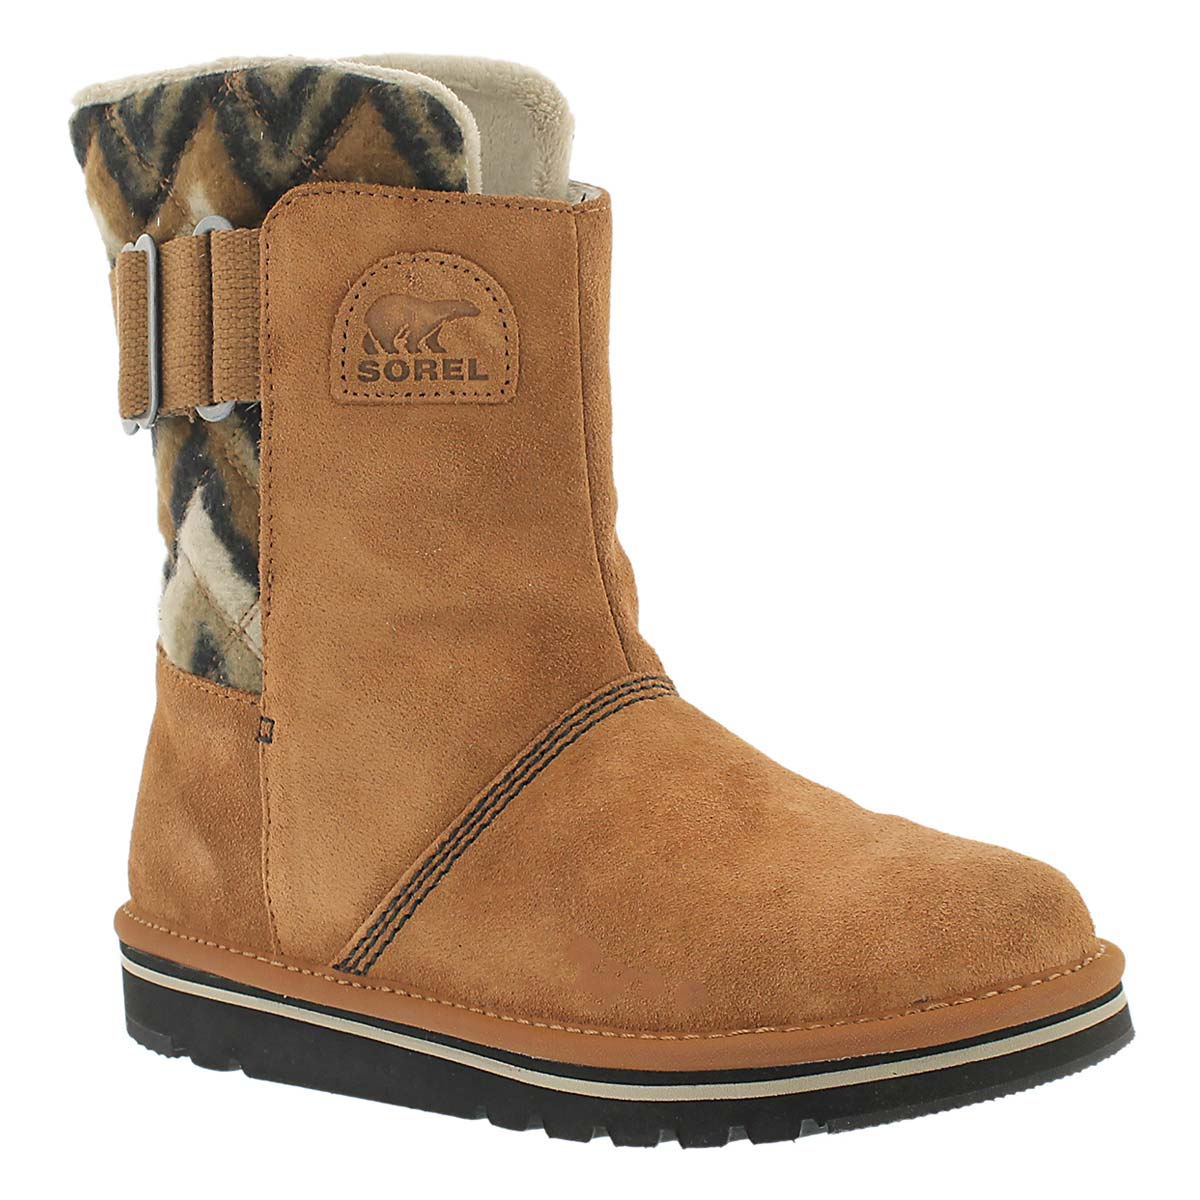 Lds The Newbie grizzly bear bootie